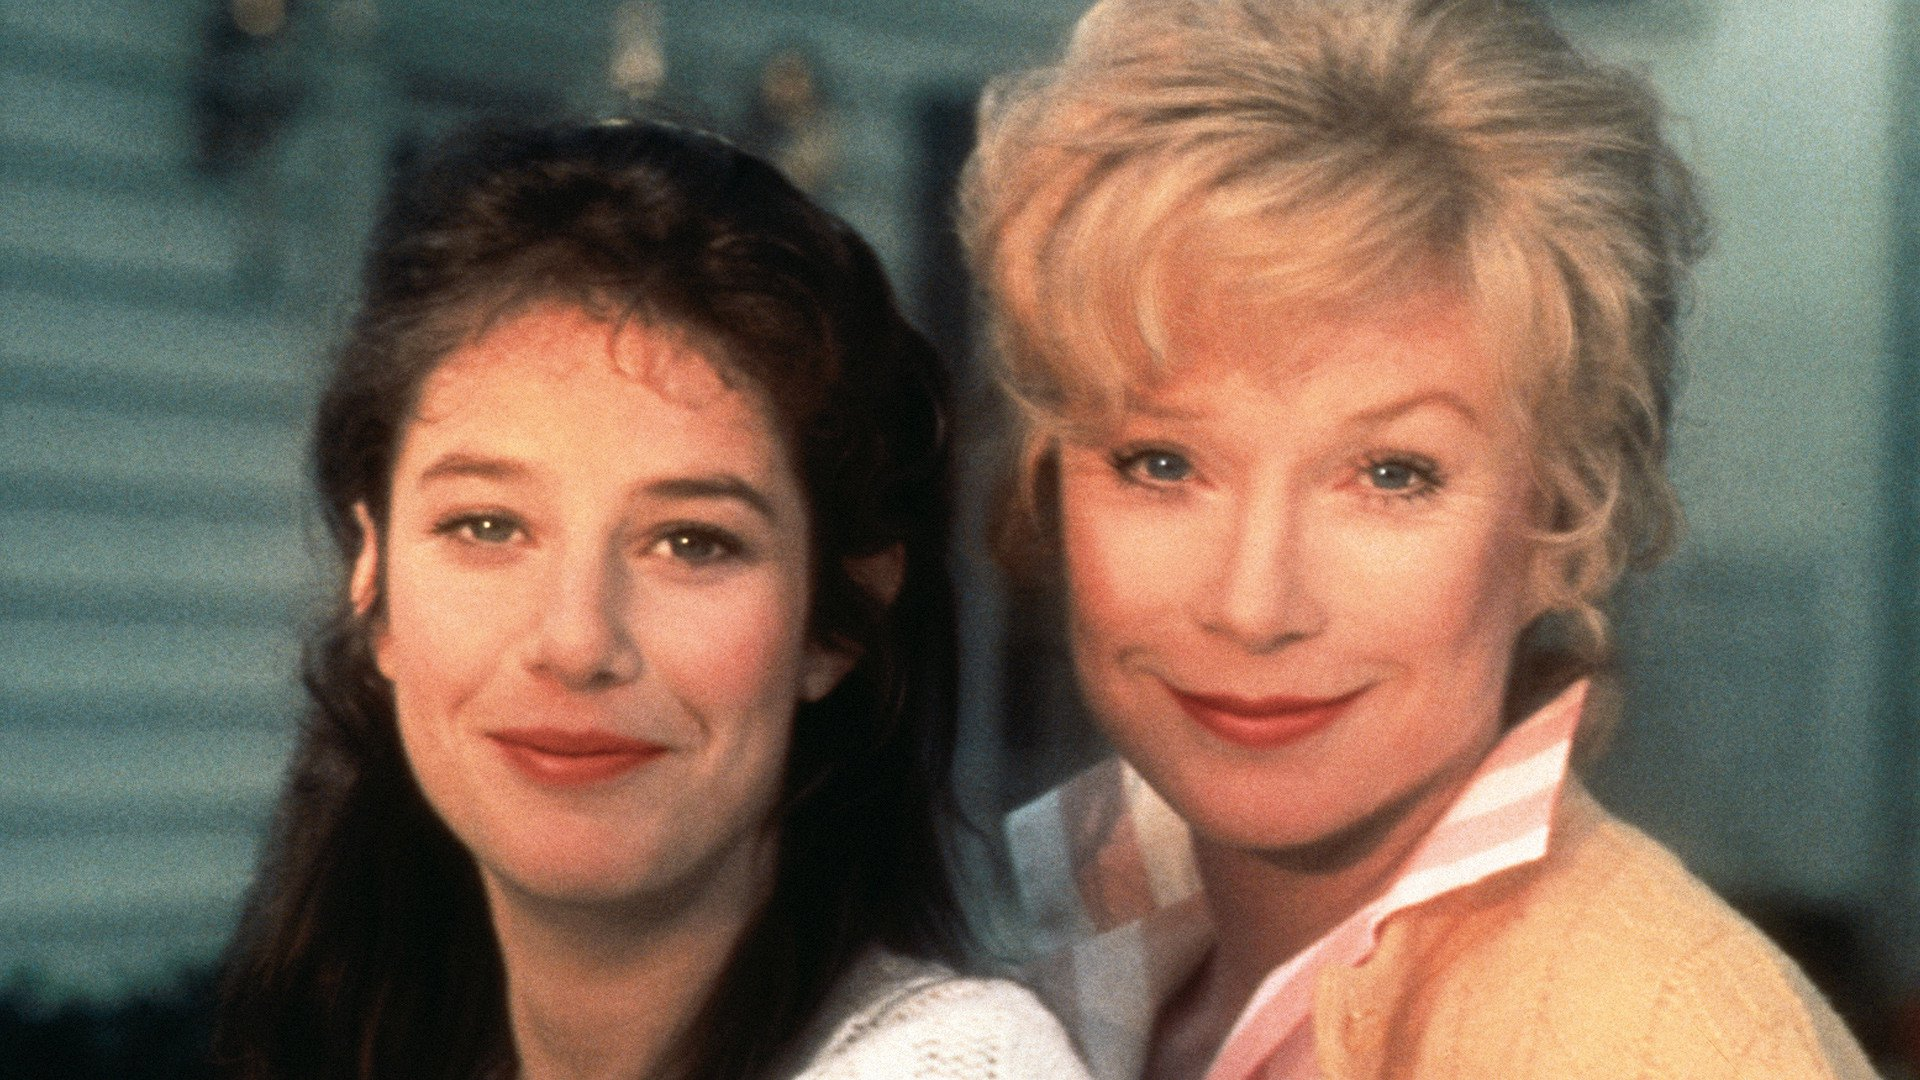 Terms of Endearment - Mother's Day Movies